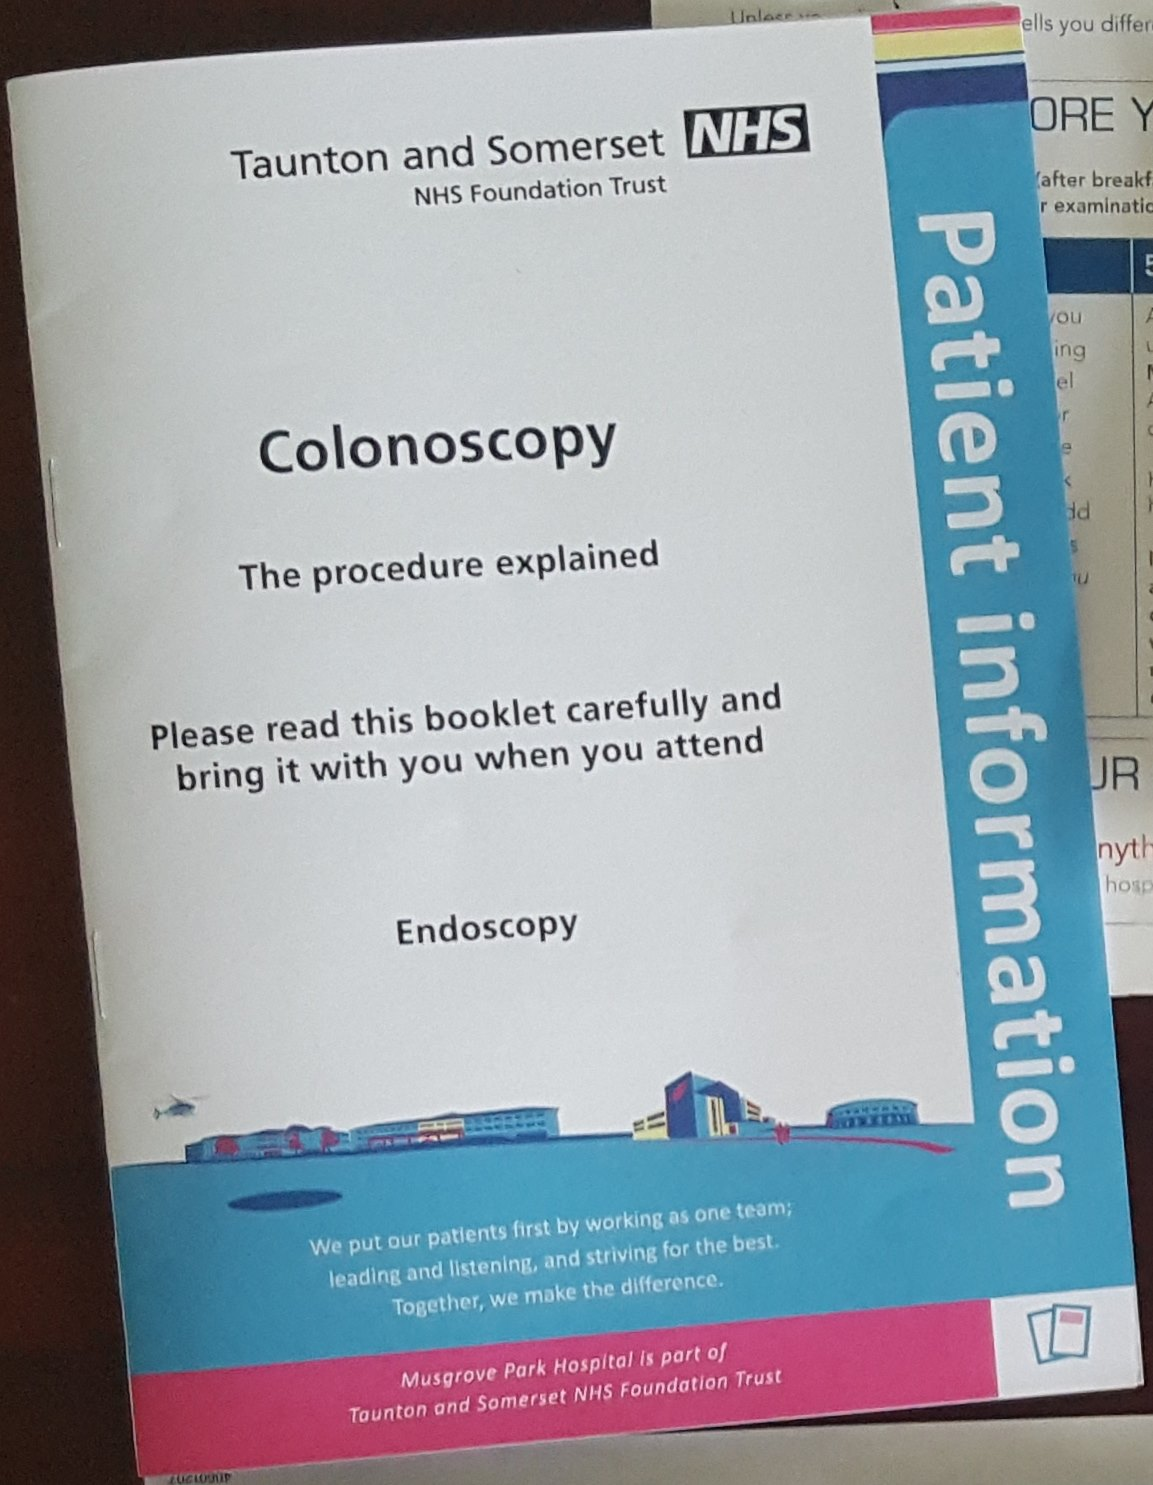 On the way to being told it's bowel cancer, expect a colonoscopy. This handbook will help with those details.